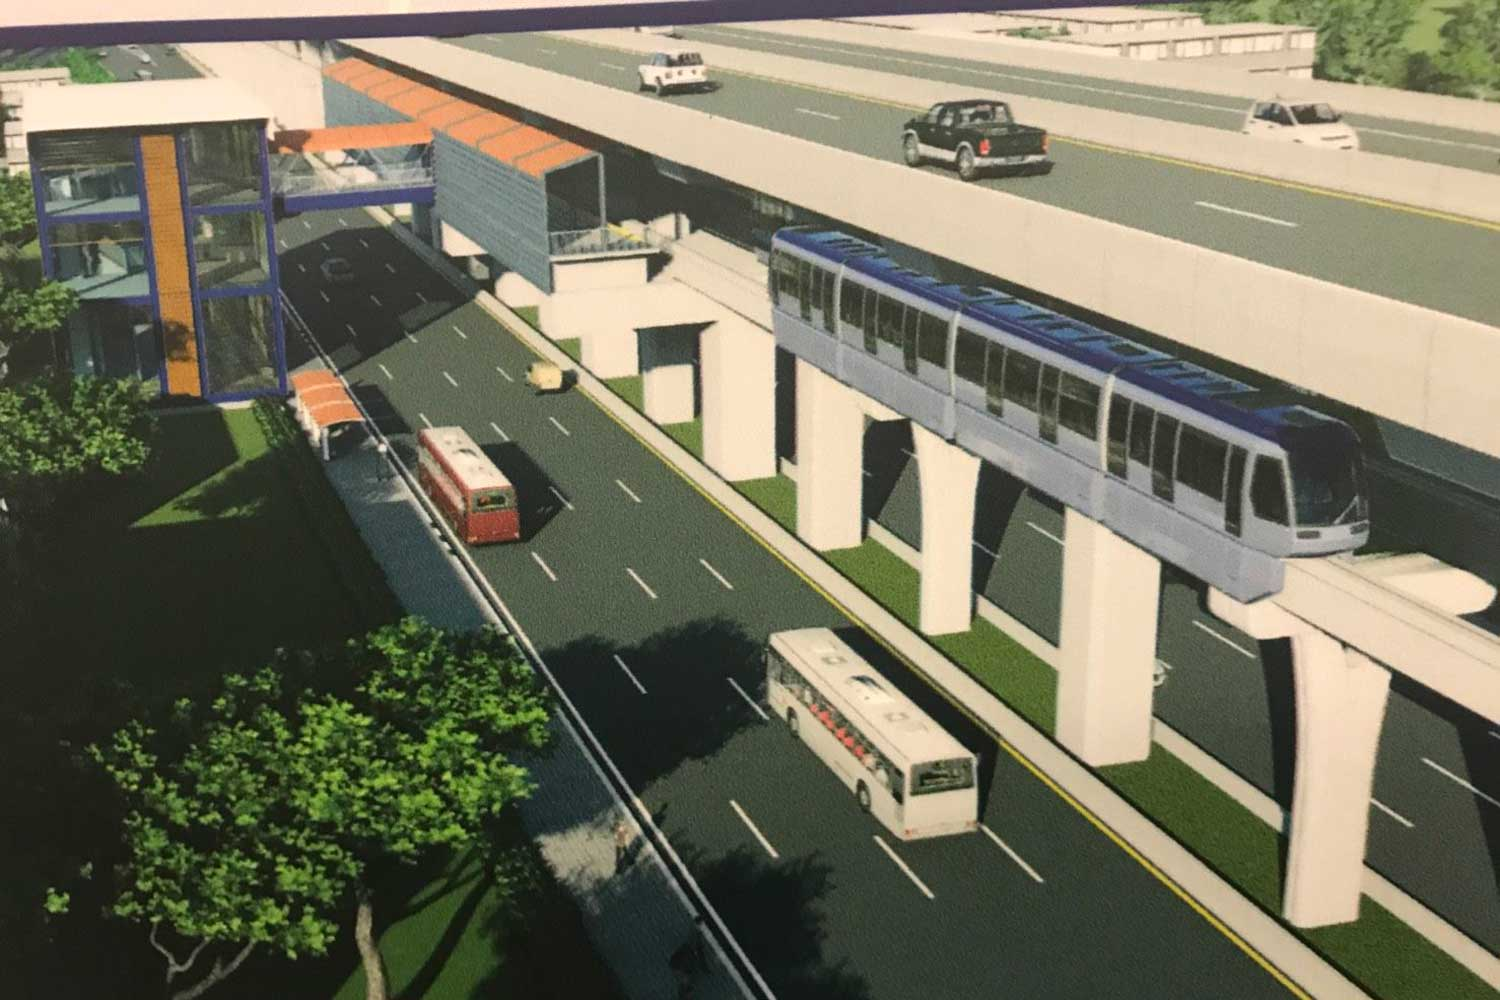 An artist's impression of the planned elevated N2 expressway and the Brown Line monorail. (Photo supplied)